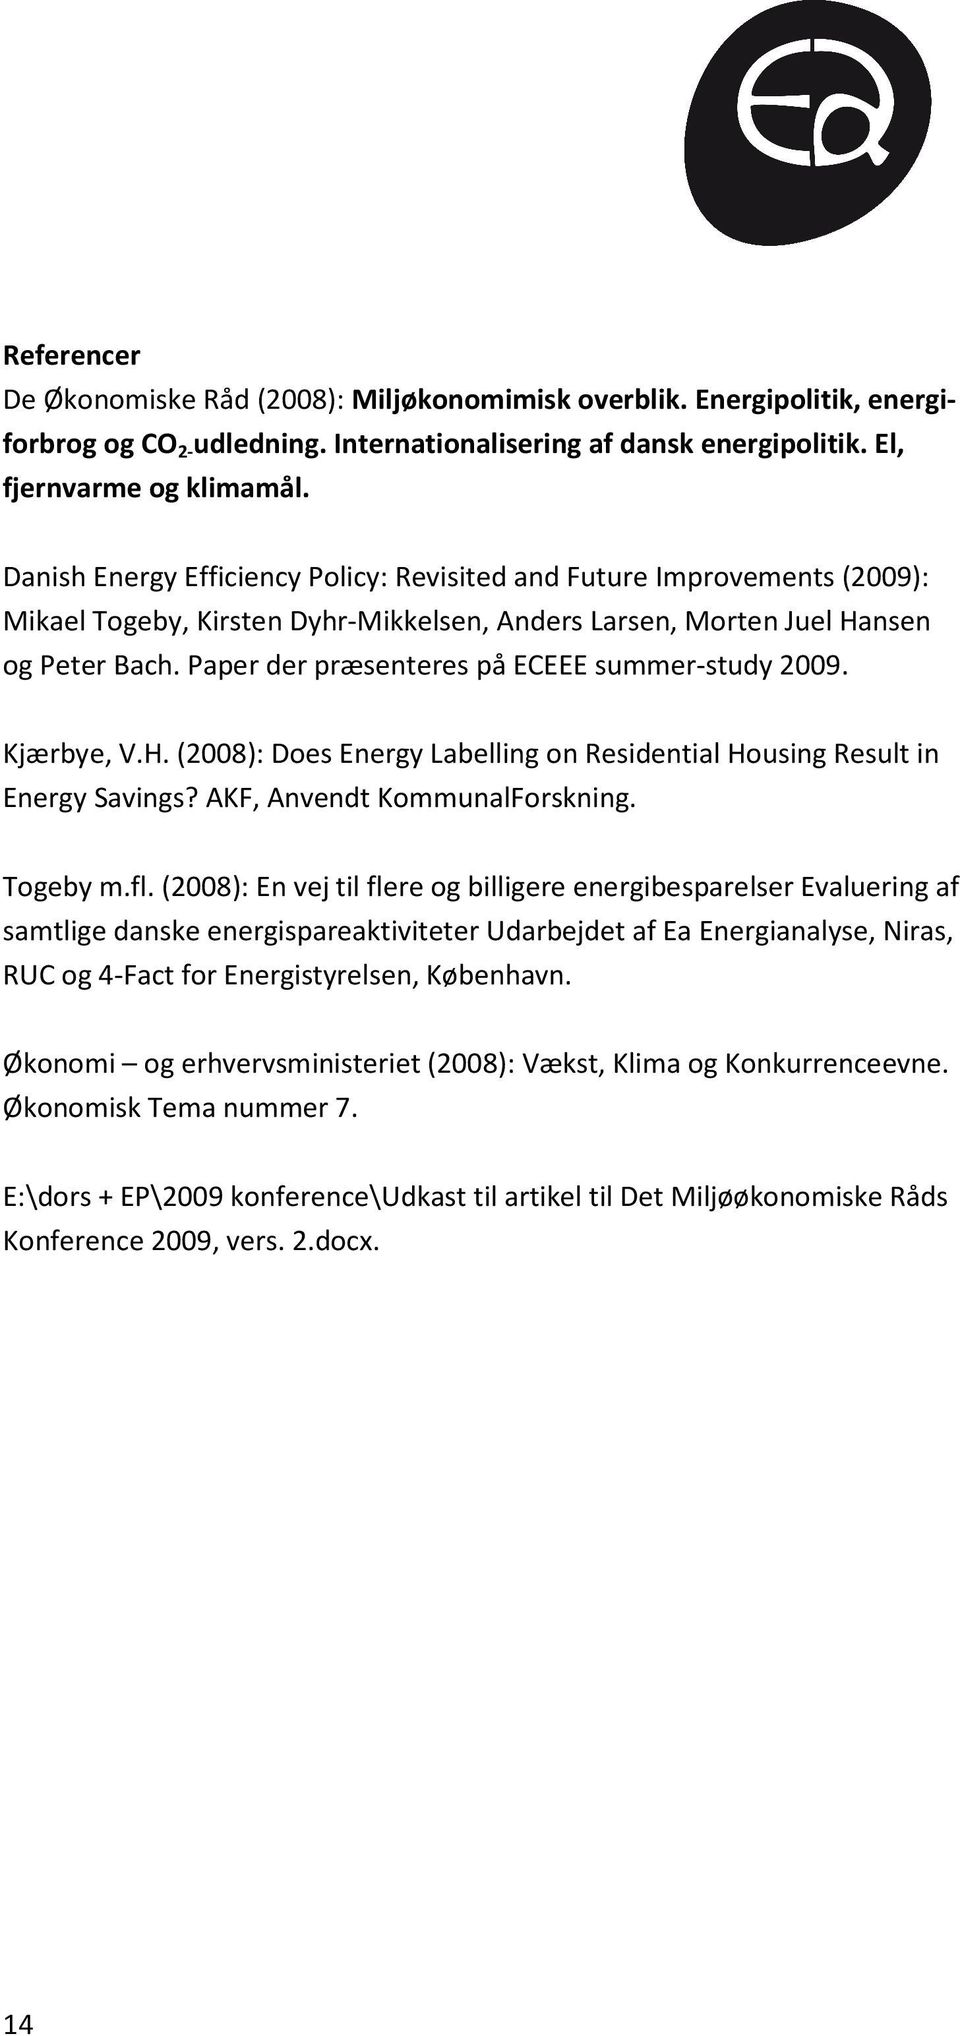 Paper der præsenteres på ECEEE summer-study 2009. Kjærbye, V.H. (2008): Does Energy Labelling on Residential Housing Result in Energy Savings? AKF, Anvendt KommunalForskning. Togeby m.fl.